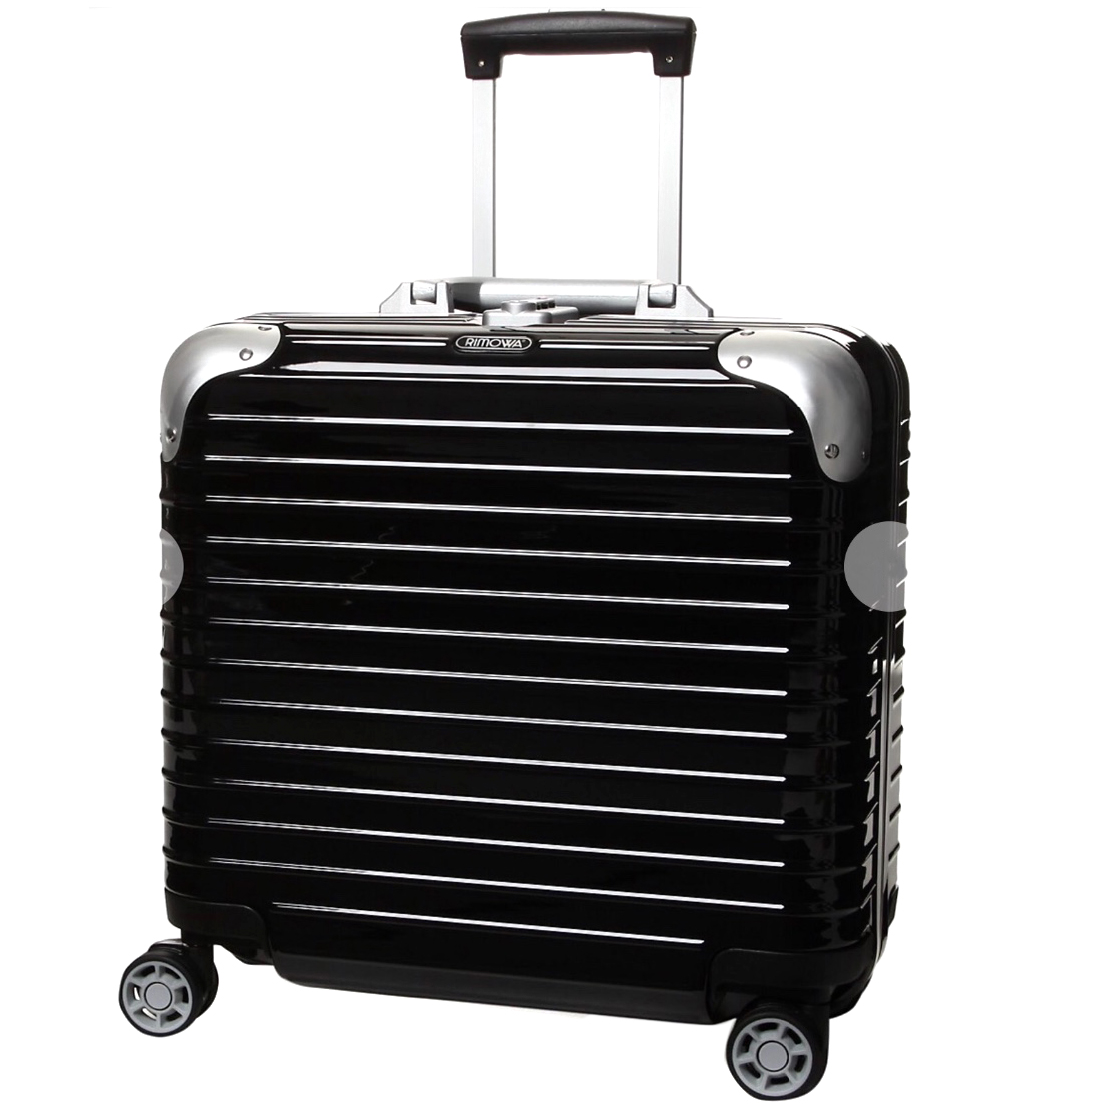 Rimowa Limbo 4-wheel multi-wheel suitcase